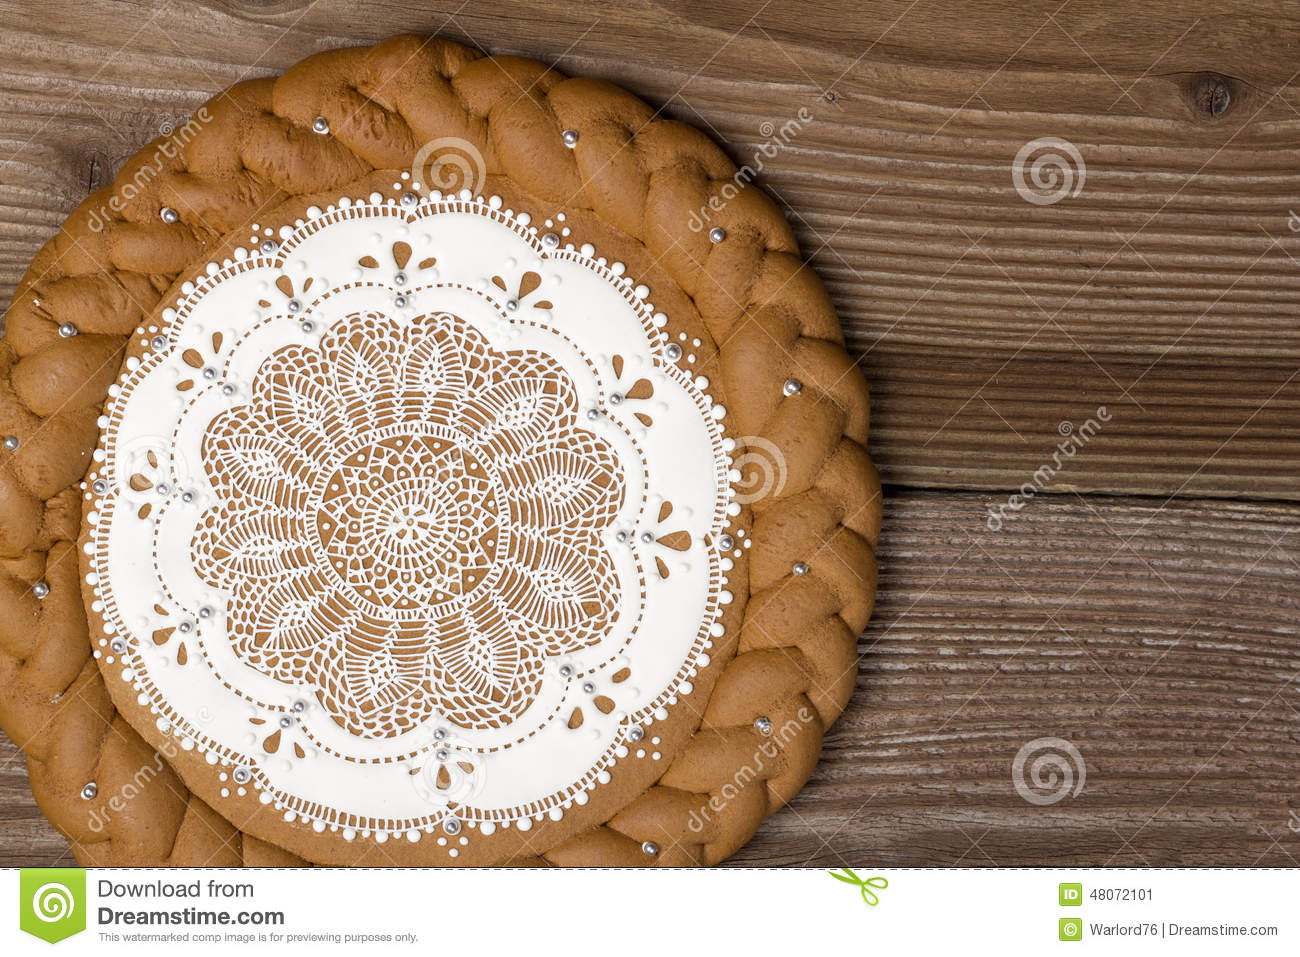 Ginger Cake Patterns And Design : Gingerbread Cake Stock Photo - Image: 48072101